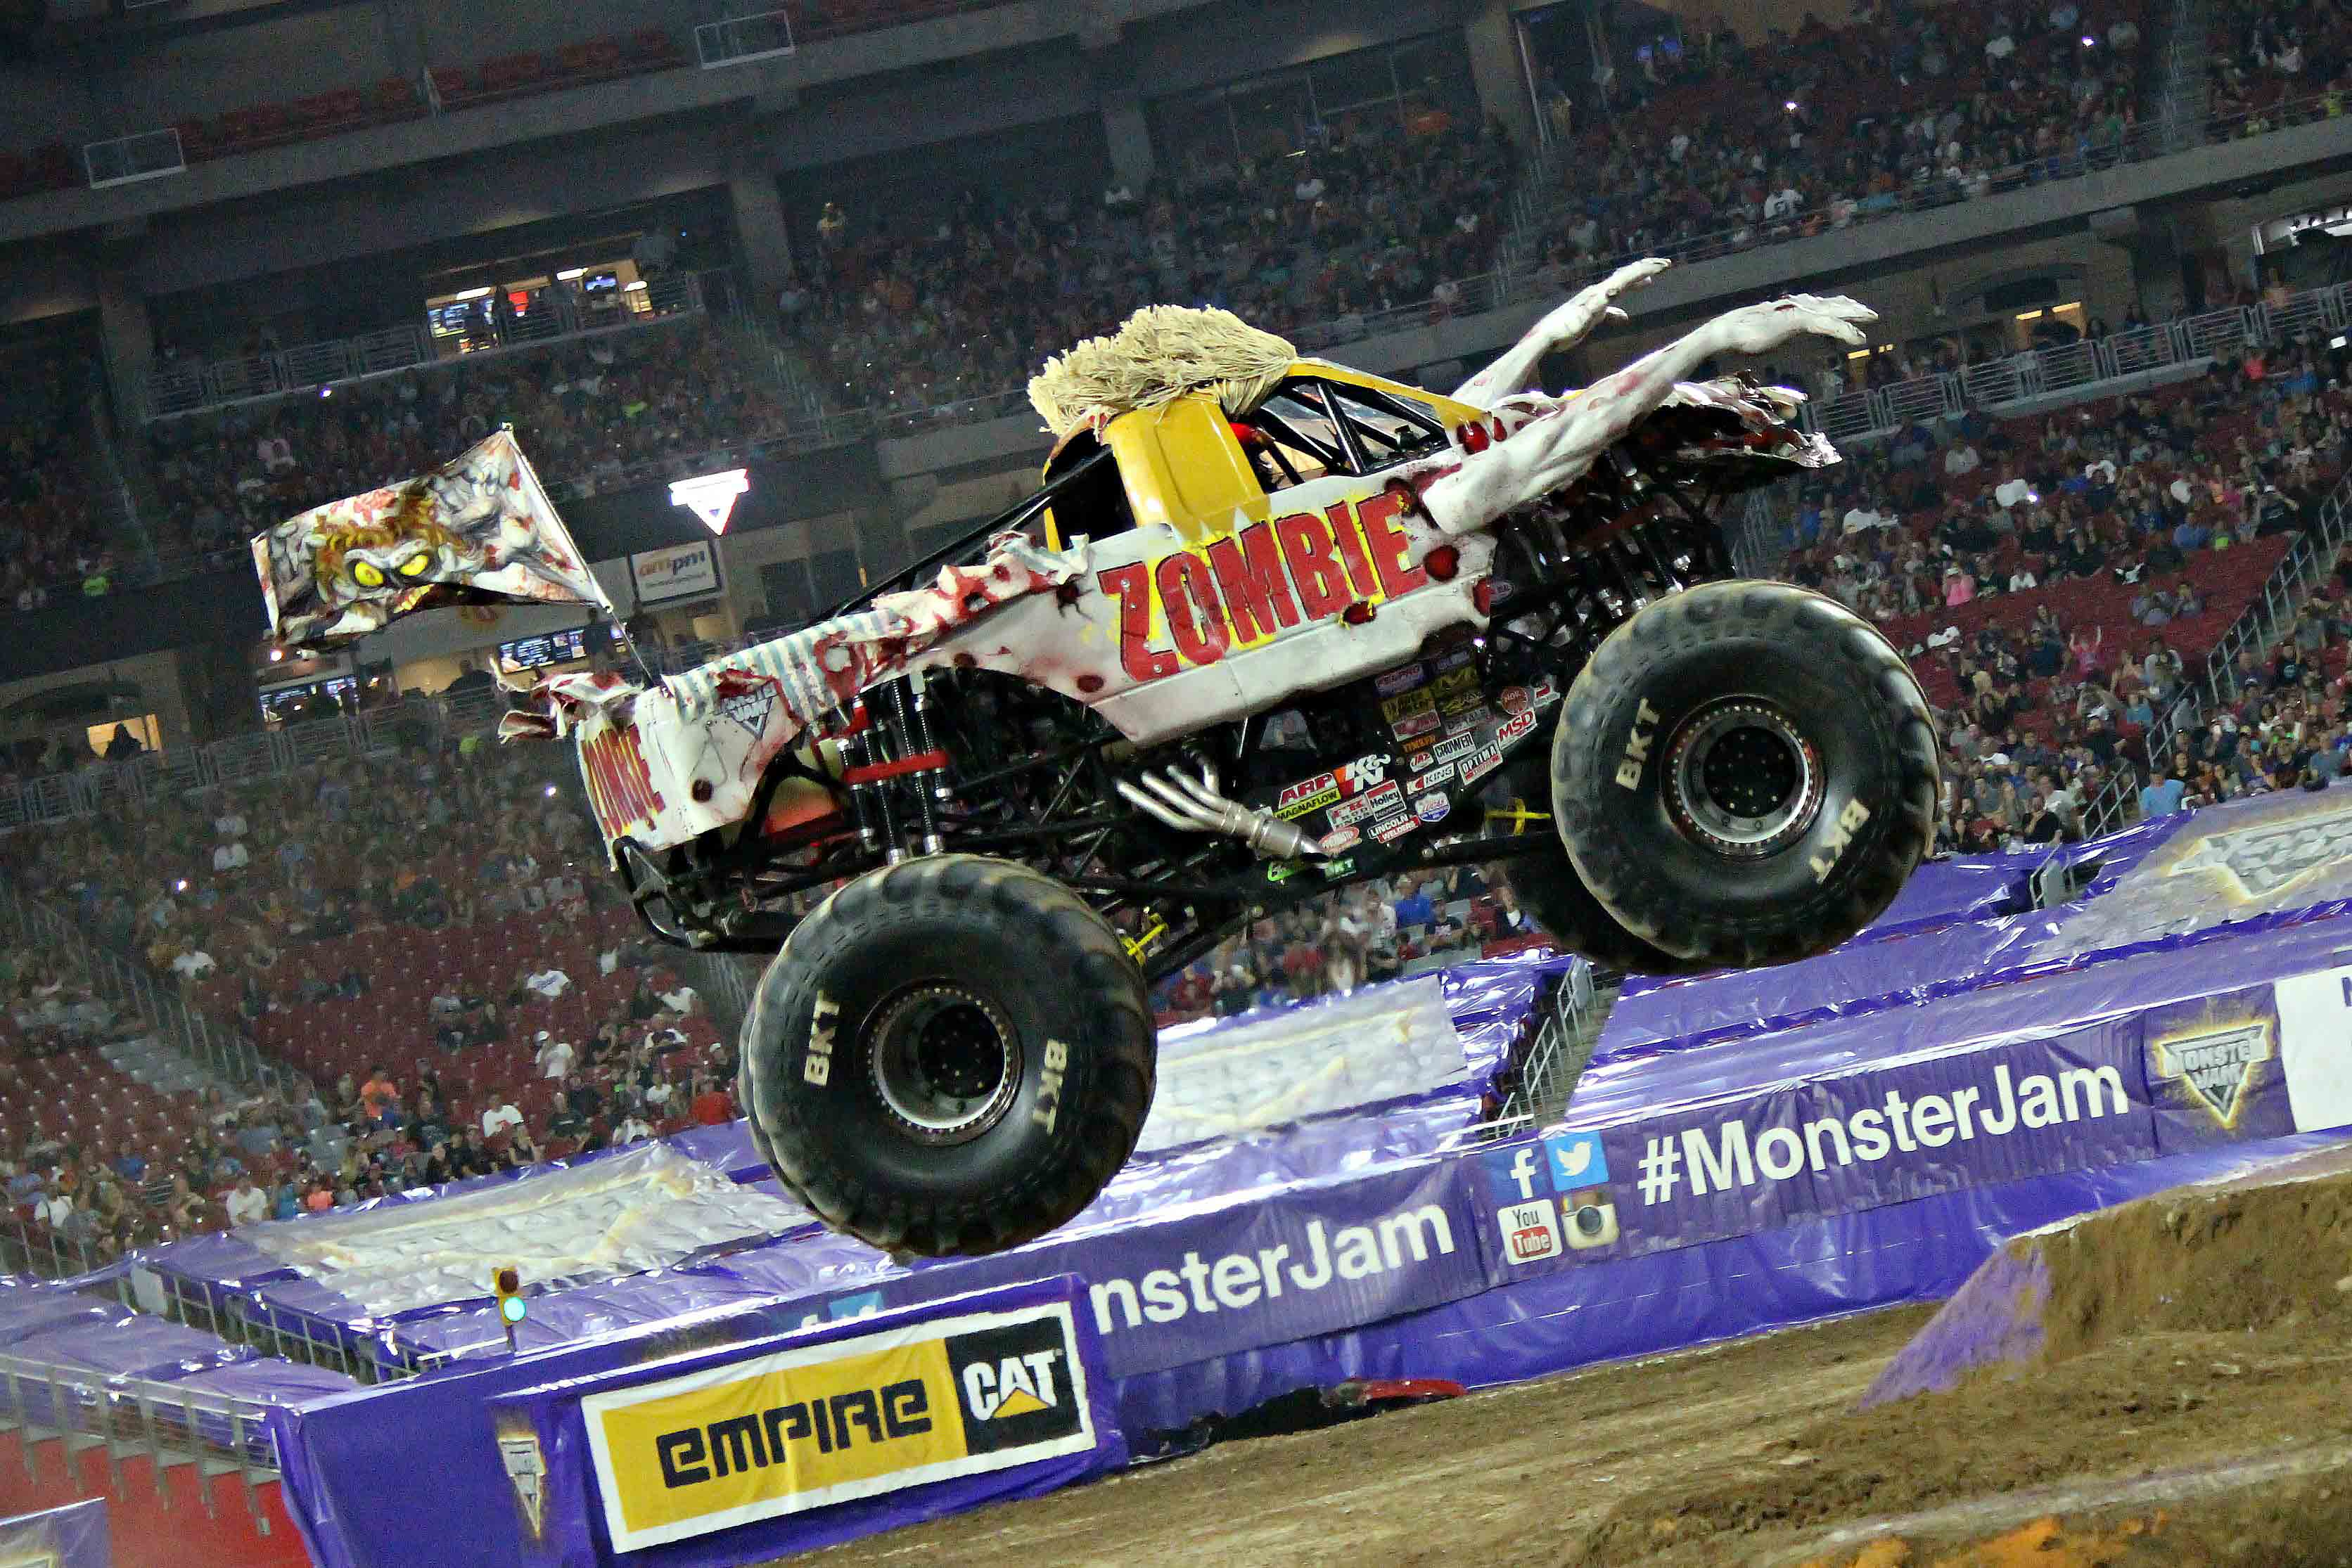 Dustin Brown drove Zombie™ at Monster Jam Glendale. Photo by Evan Posocco.